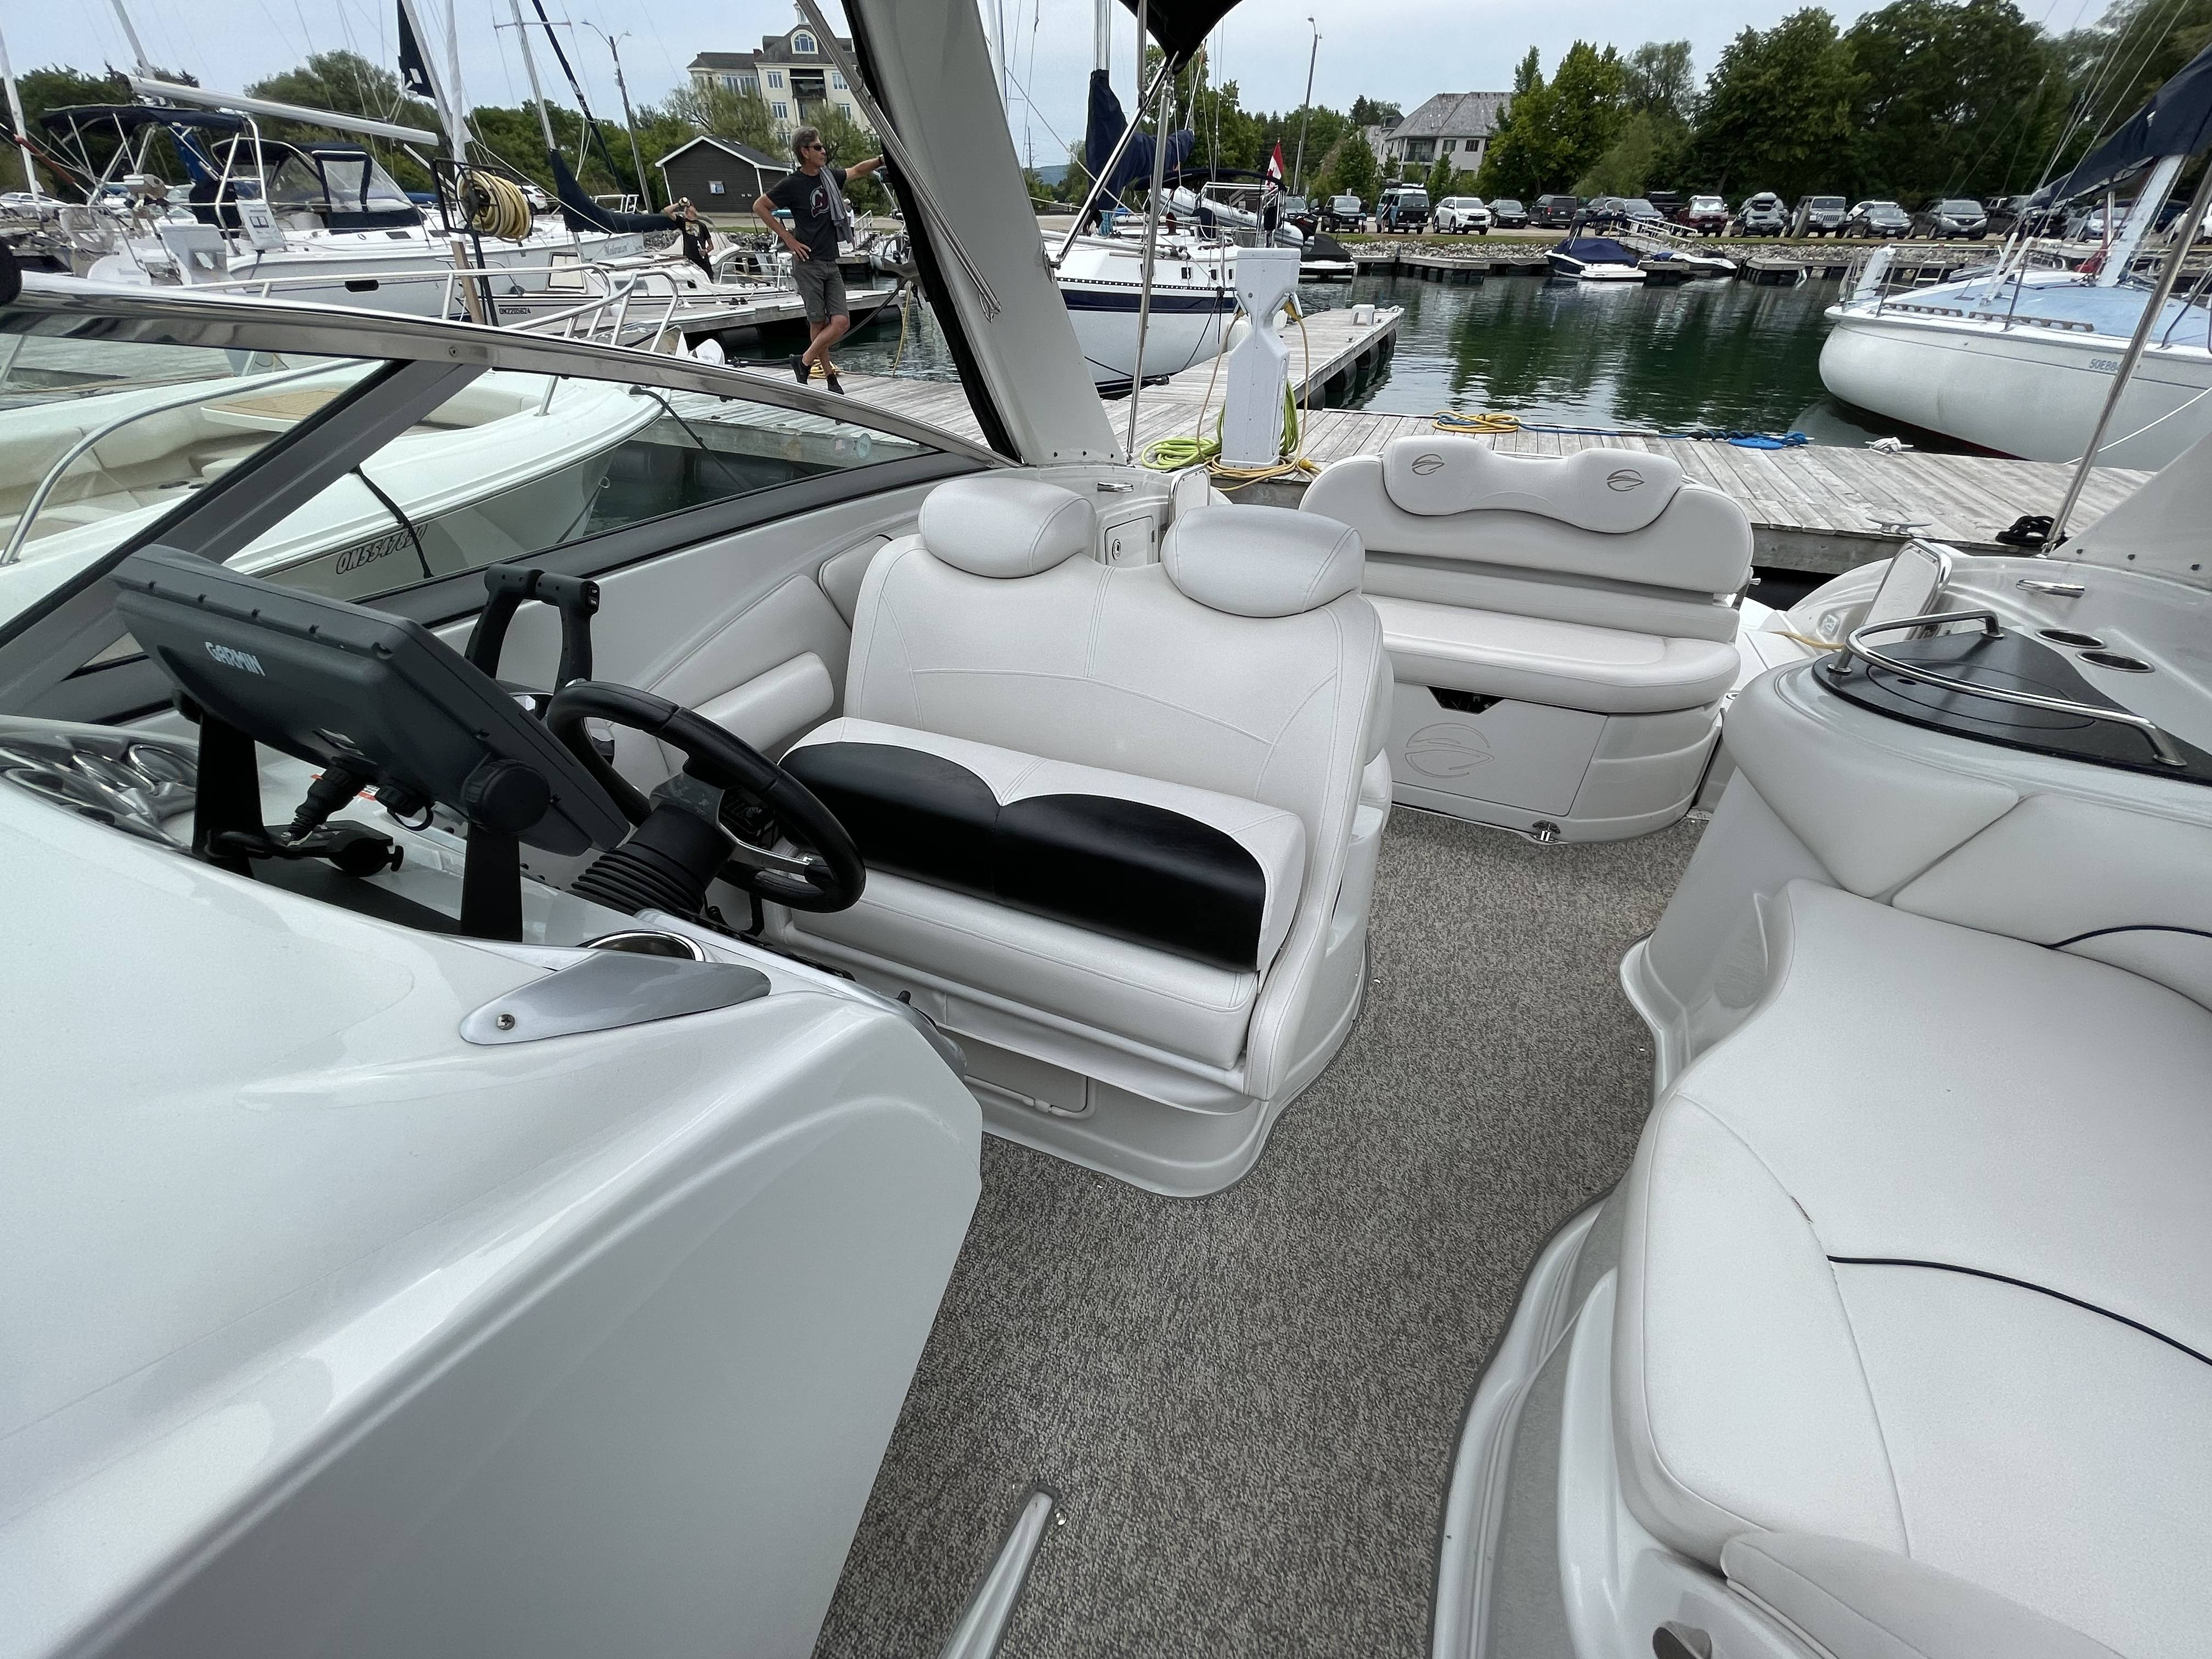 2011 Crownline boat for sale, model of the boat is 320 LS & Image # 16 of 55